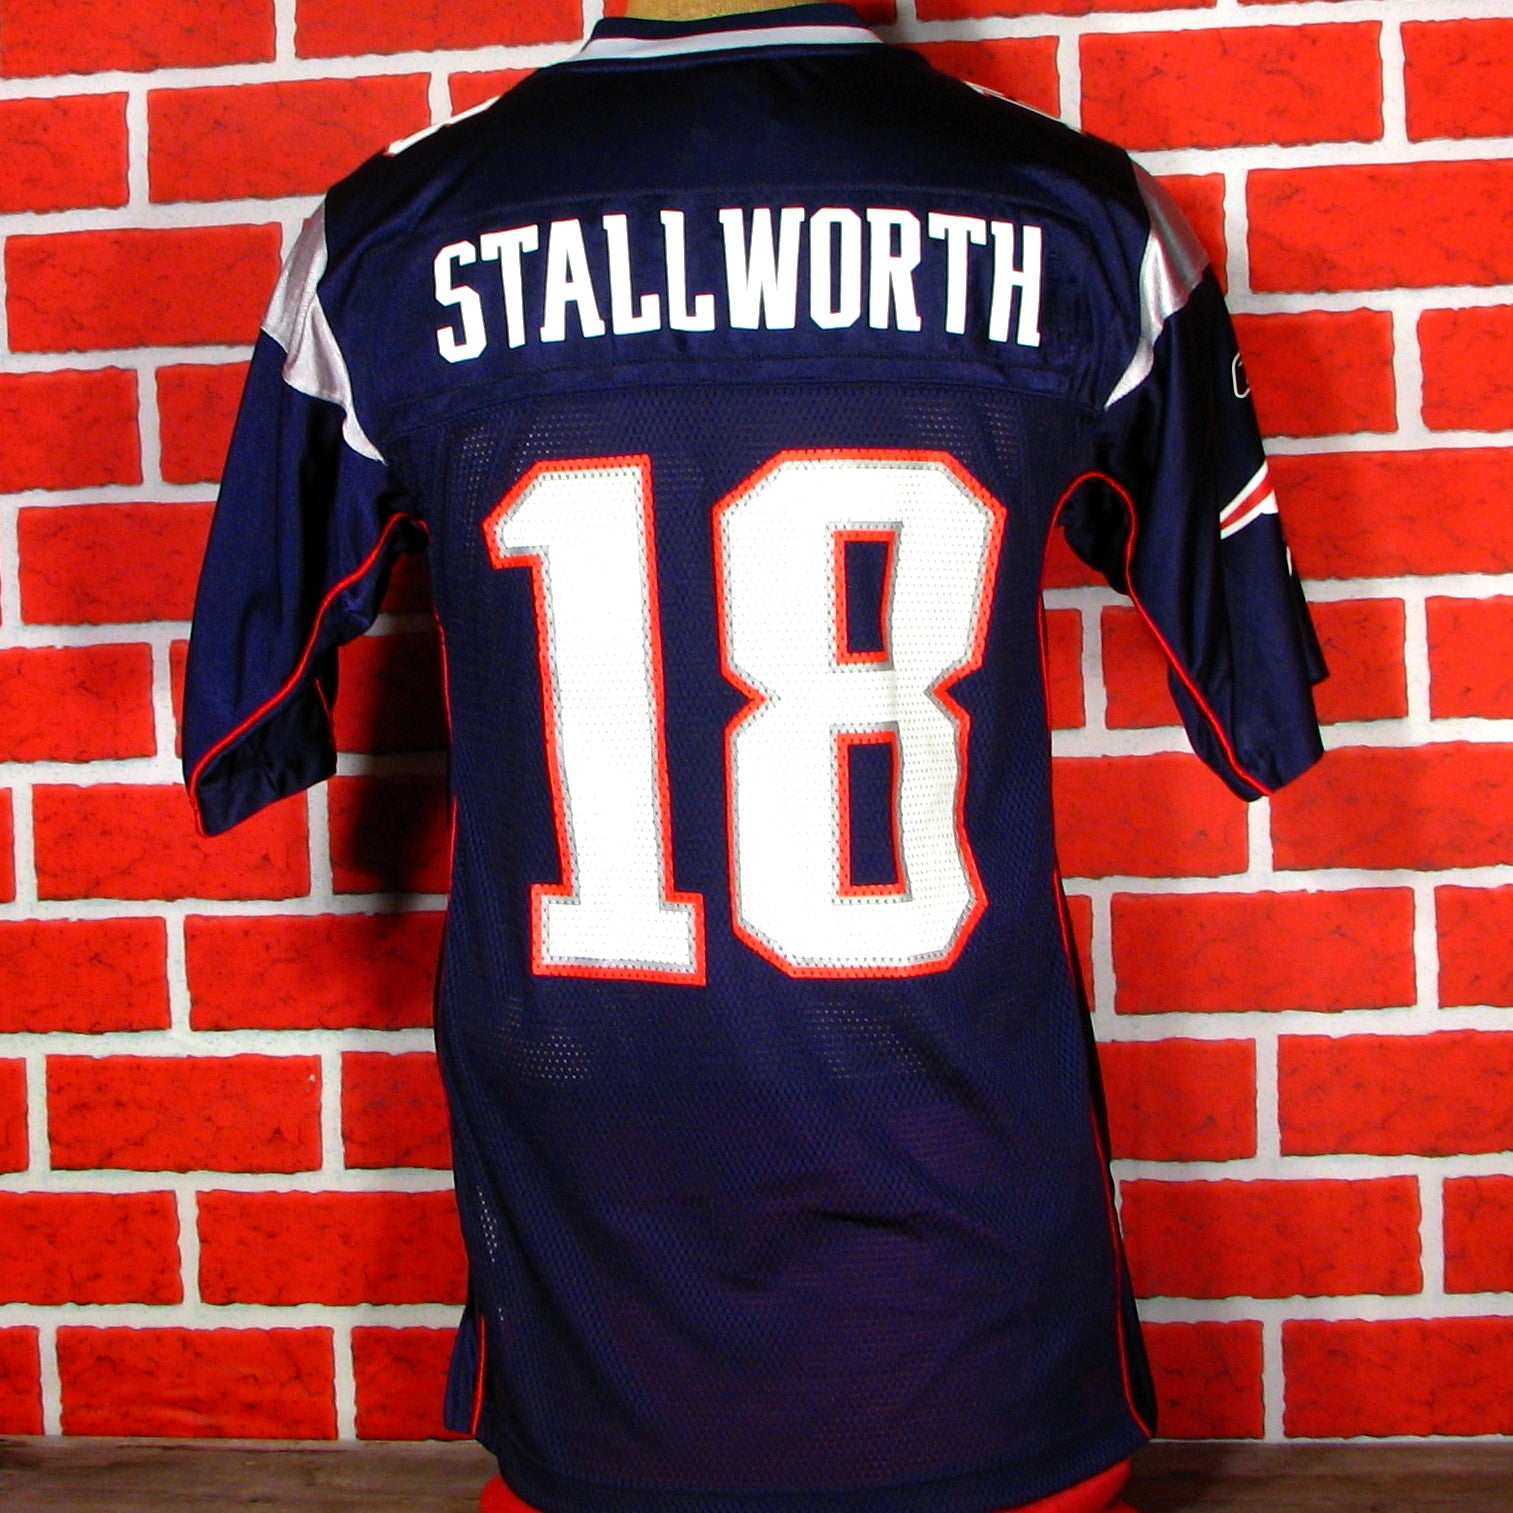 New England Patriots Stallworth # 18 Jersey